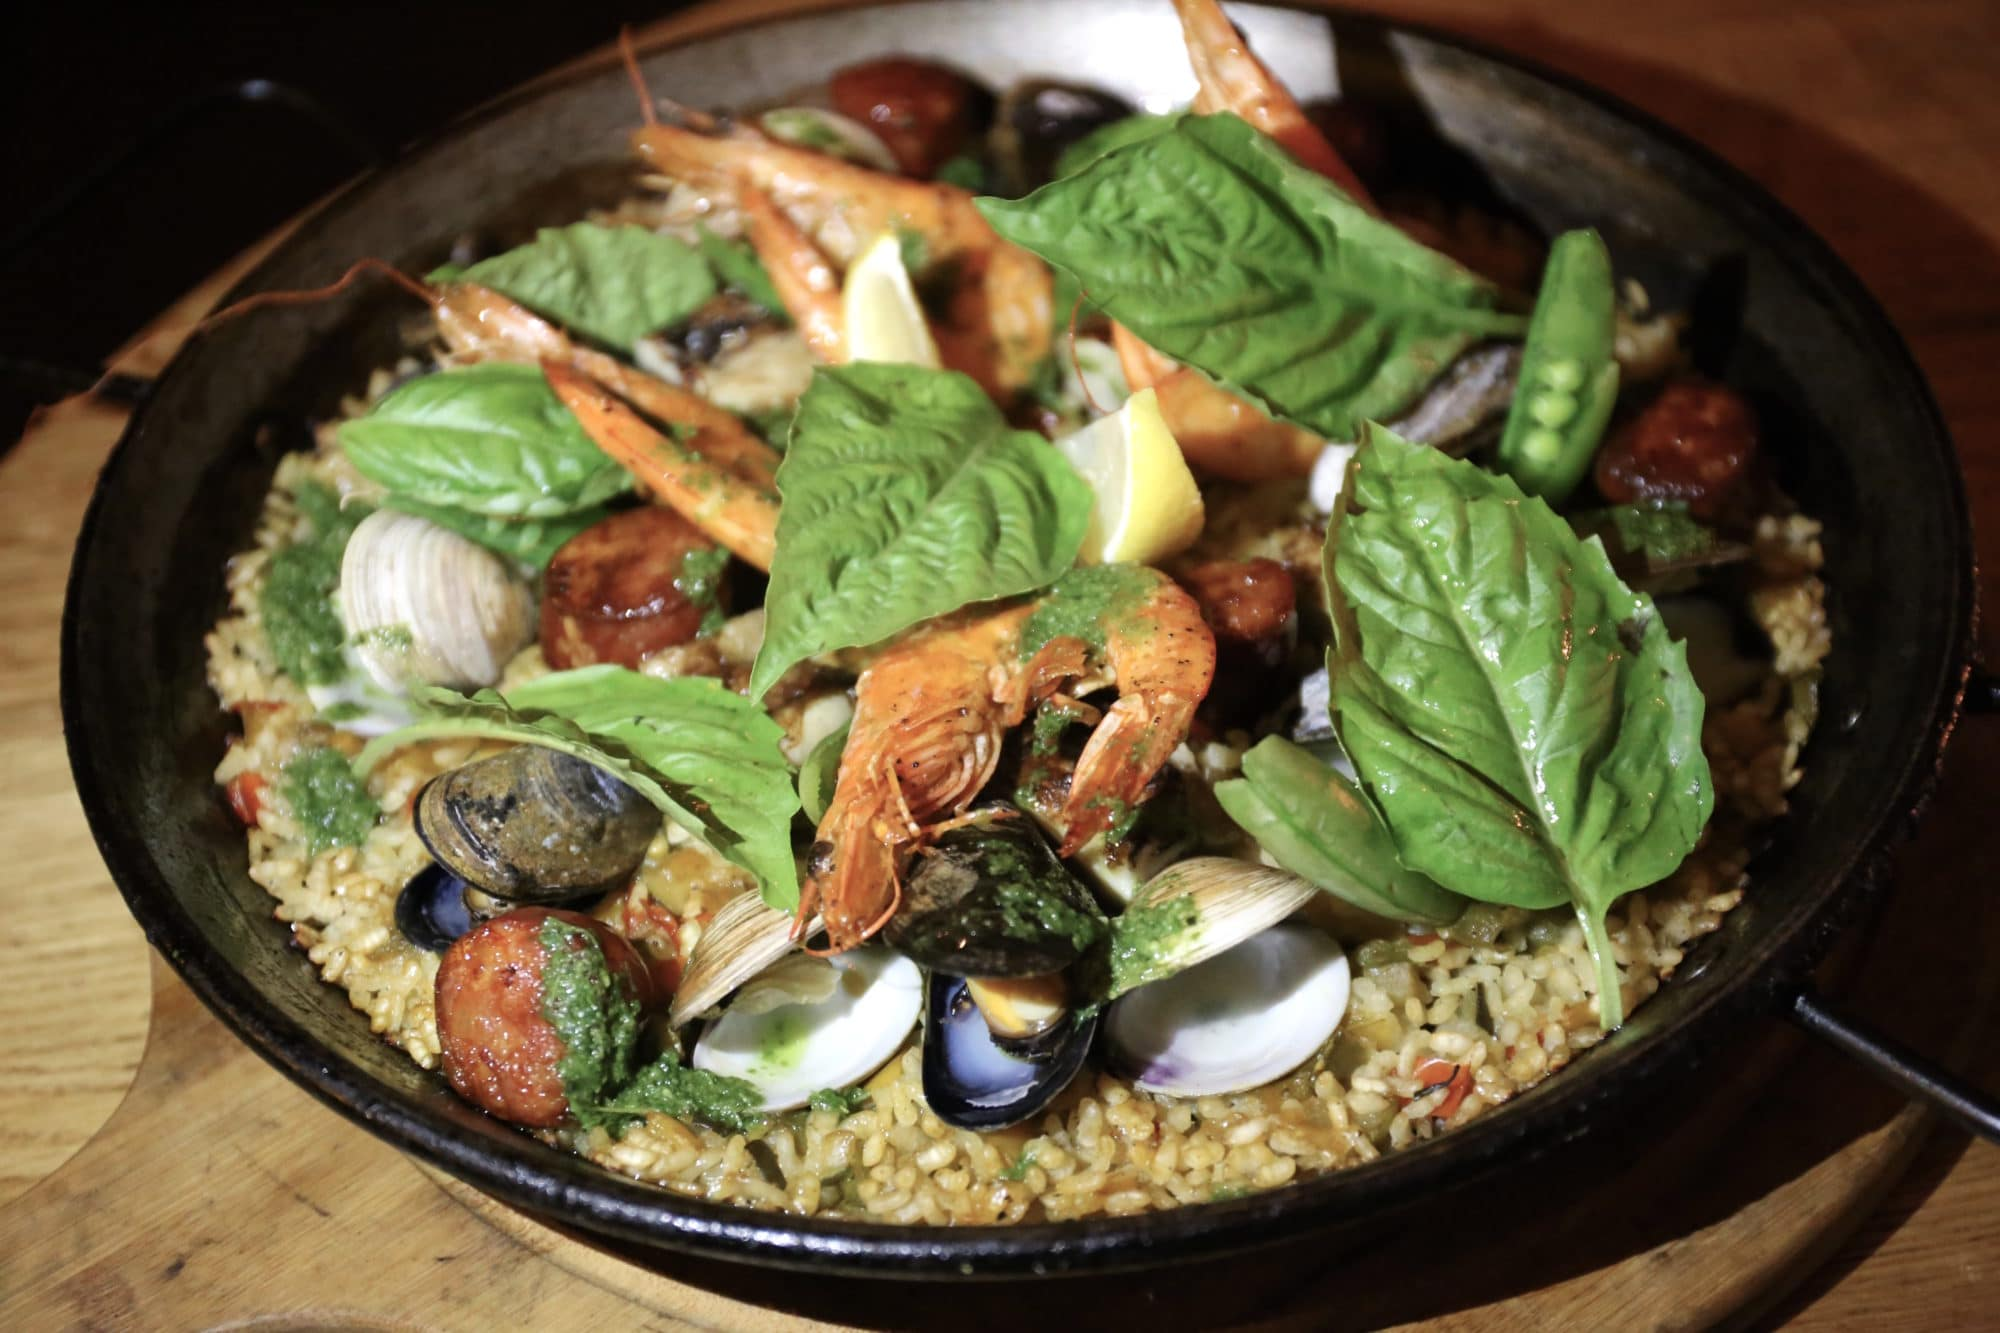 Shrimp, clams, mussels, chorizo, chicken and saffron in Carmen Toronto's signature paella.